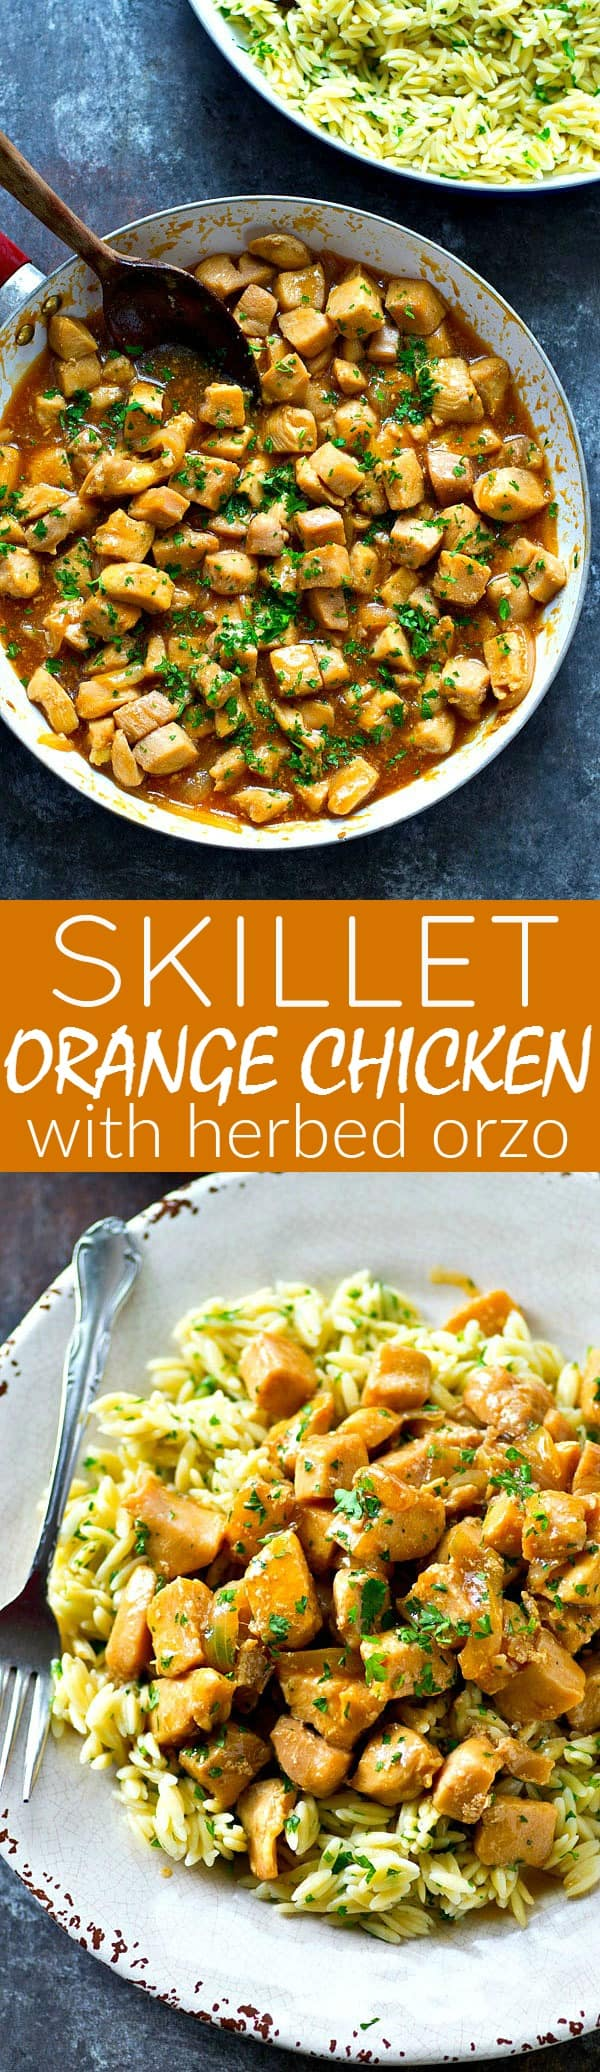 Orange chicken just like you get at Panda Express with the flavorful addition of herbed orzo. It's SUPER-easy to throw together in one pan and so much lighter on the calories!